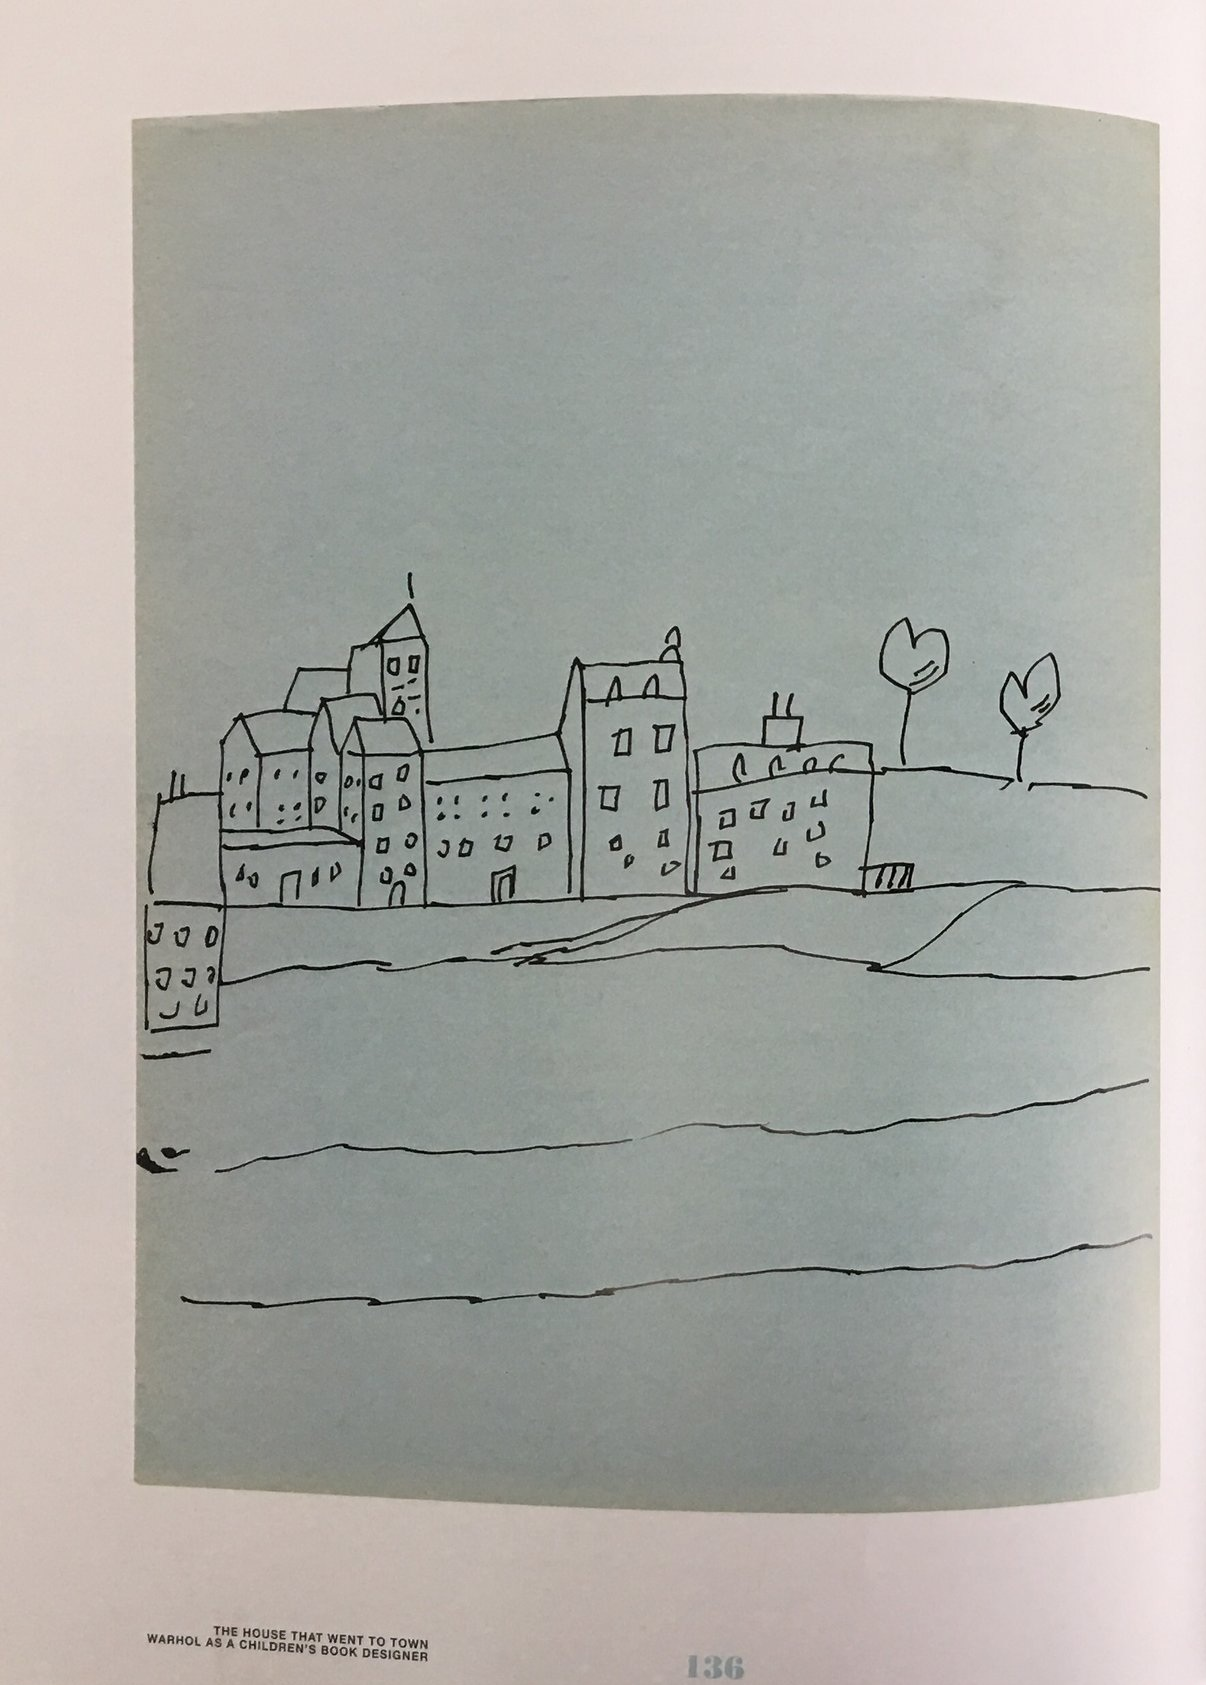 essay excerpt about the unpublished book,  The House that Went to Town  by Andy Warhol